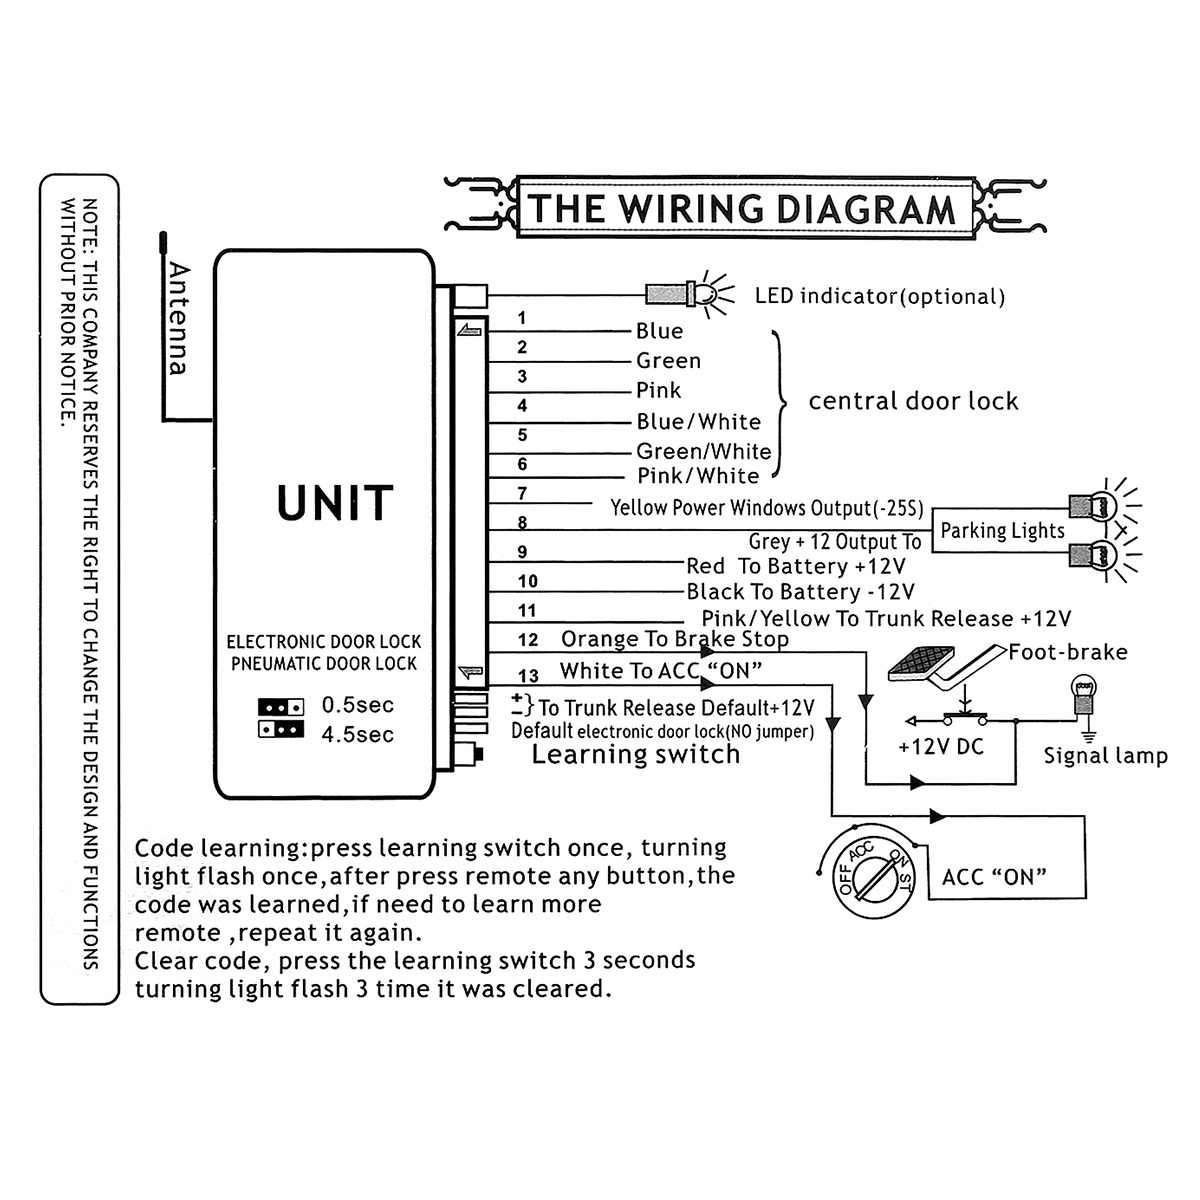 kit for power window wiring diagram universal power window switch wiring diagram general wiring diagram  universal power window switch wiring